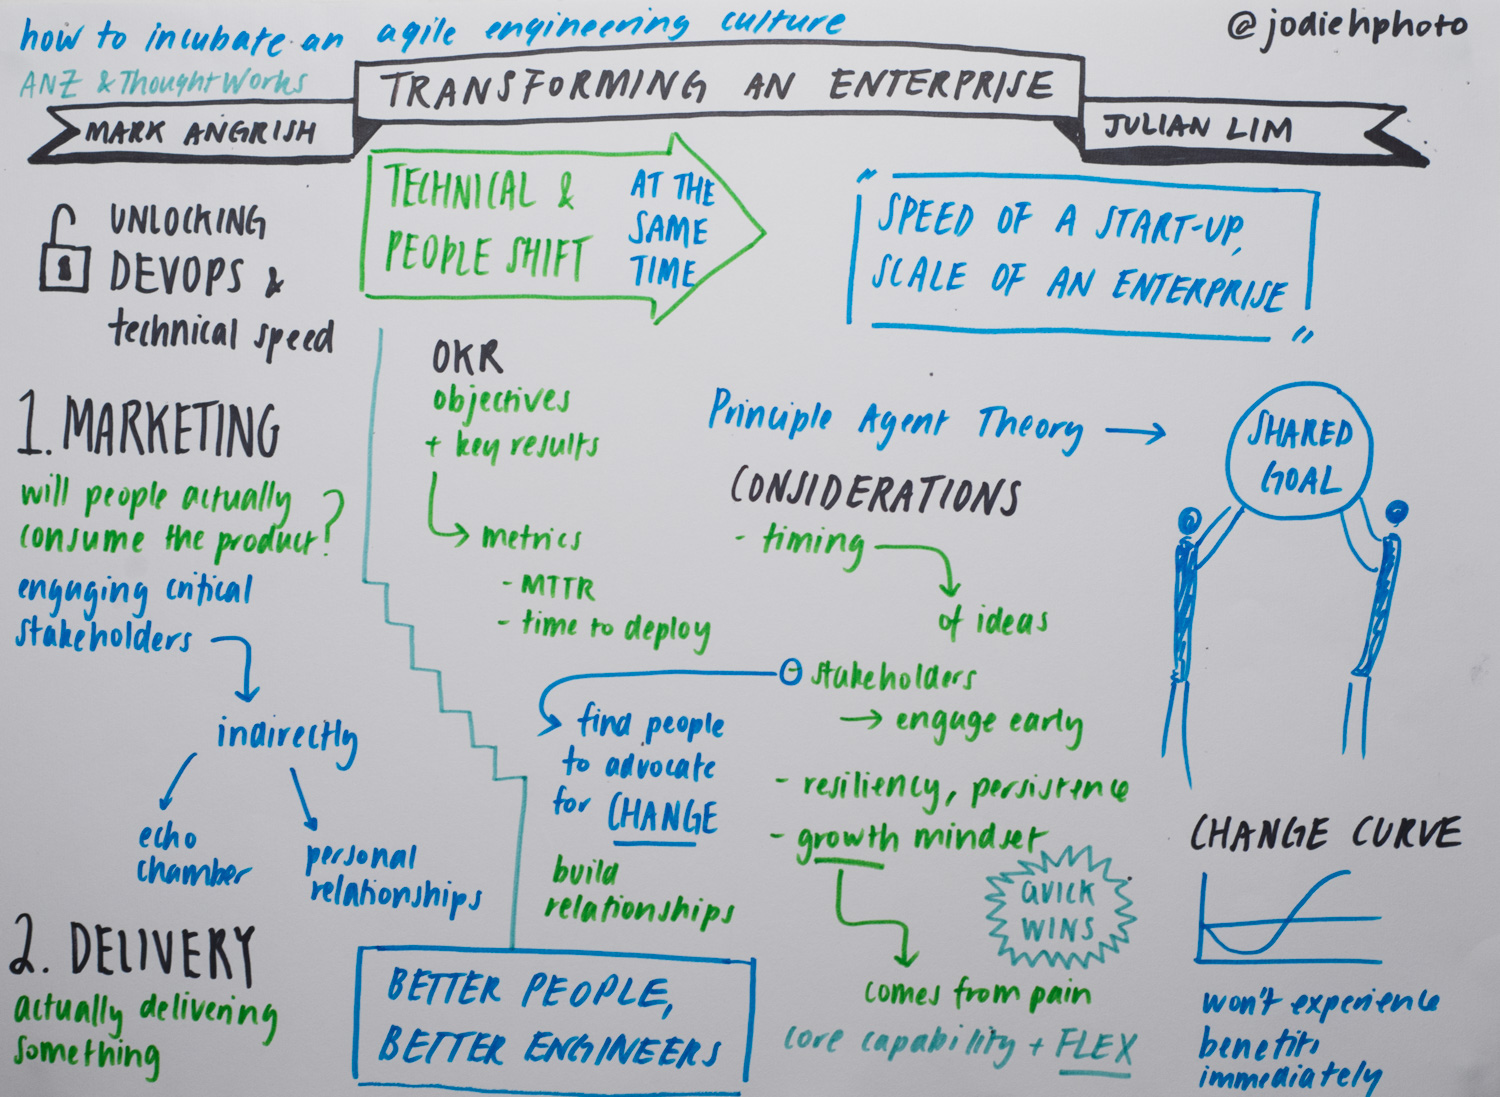 transforming an enterprise